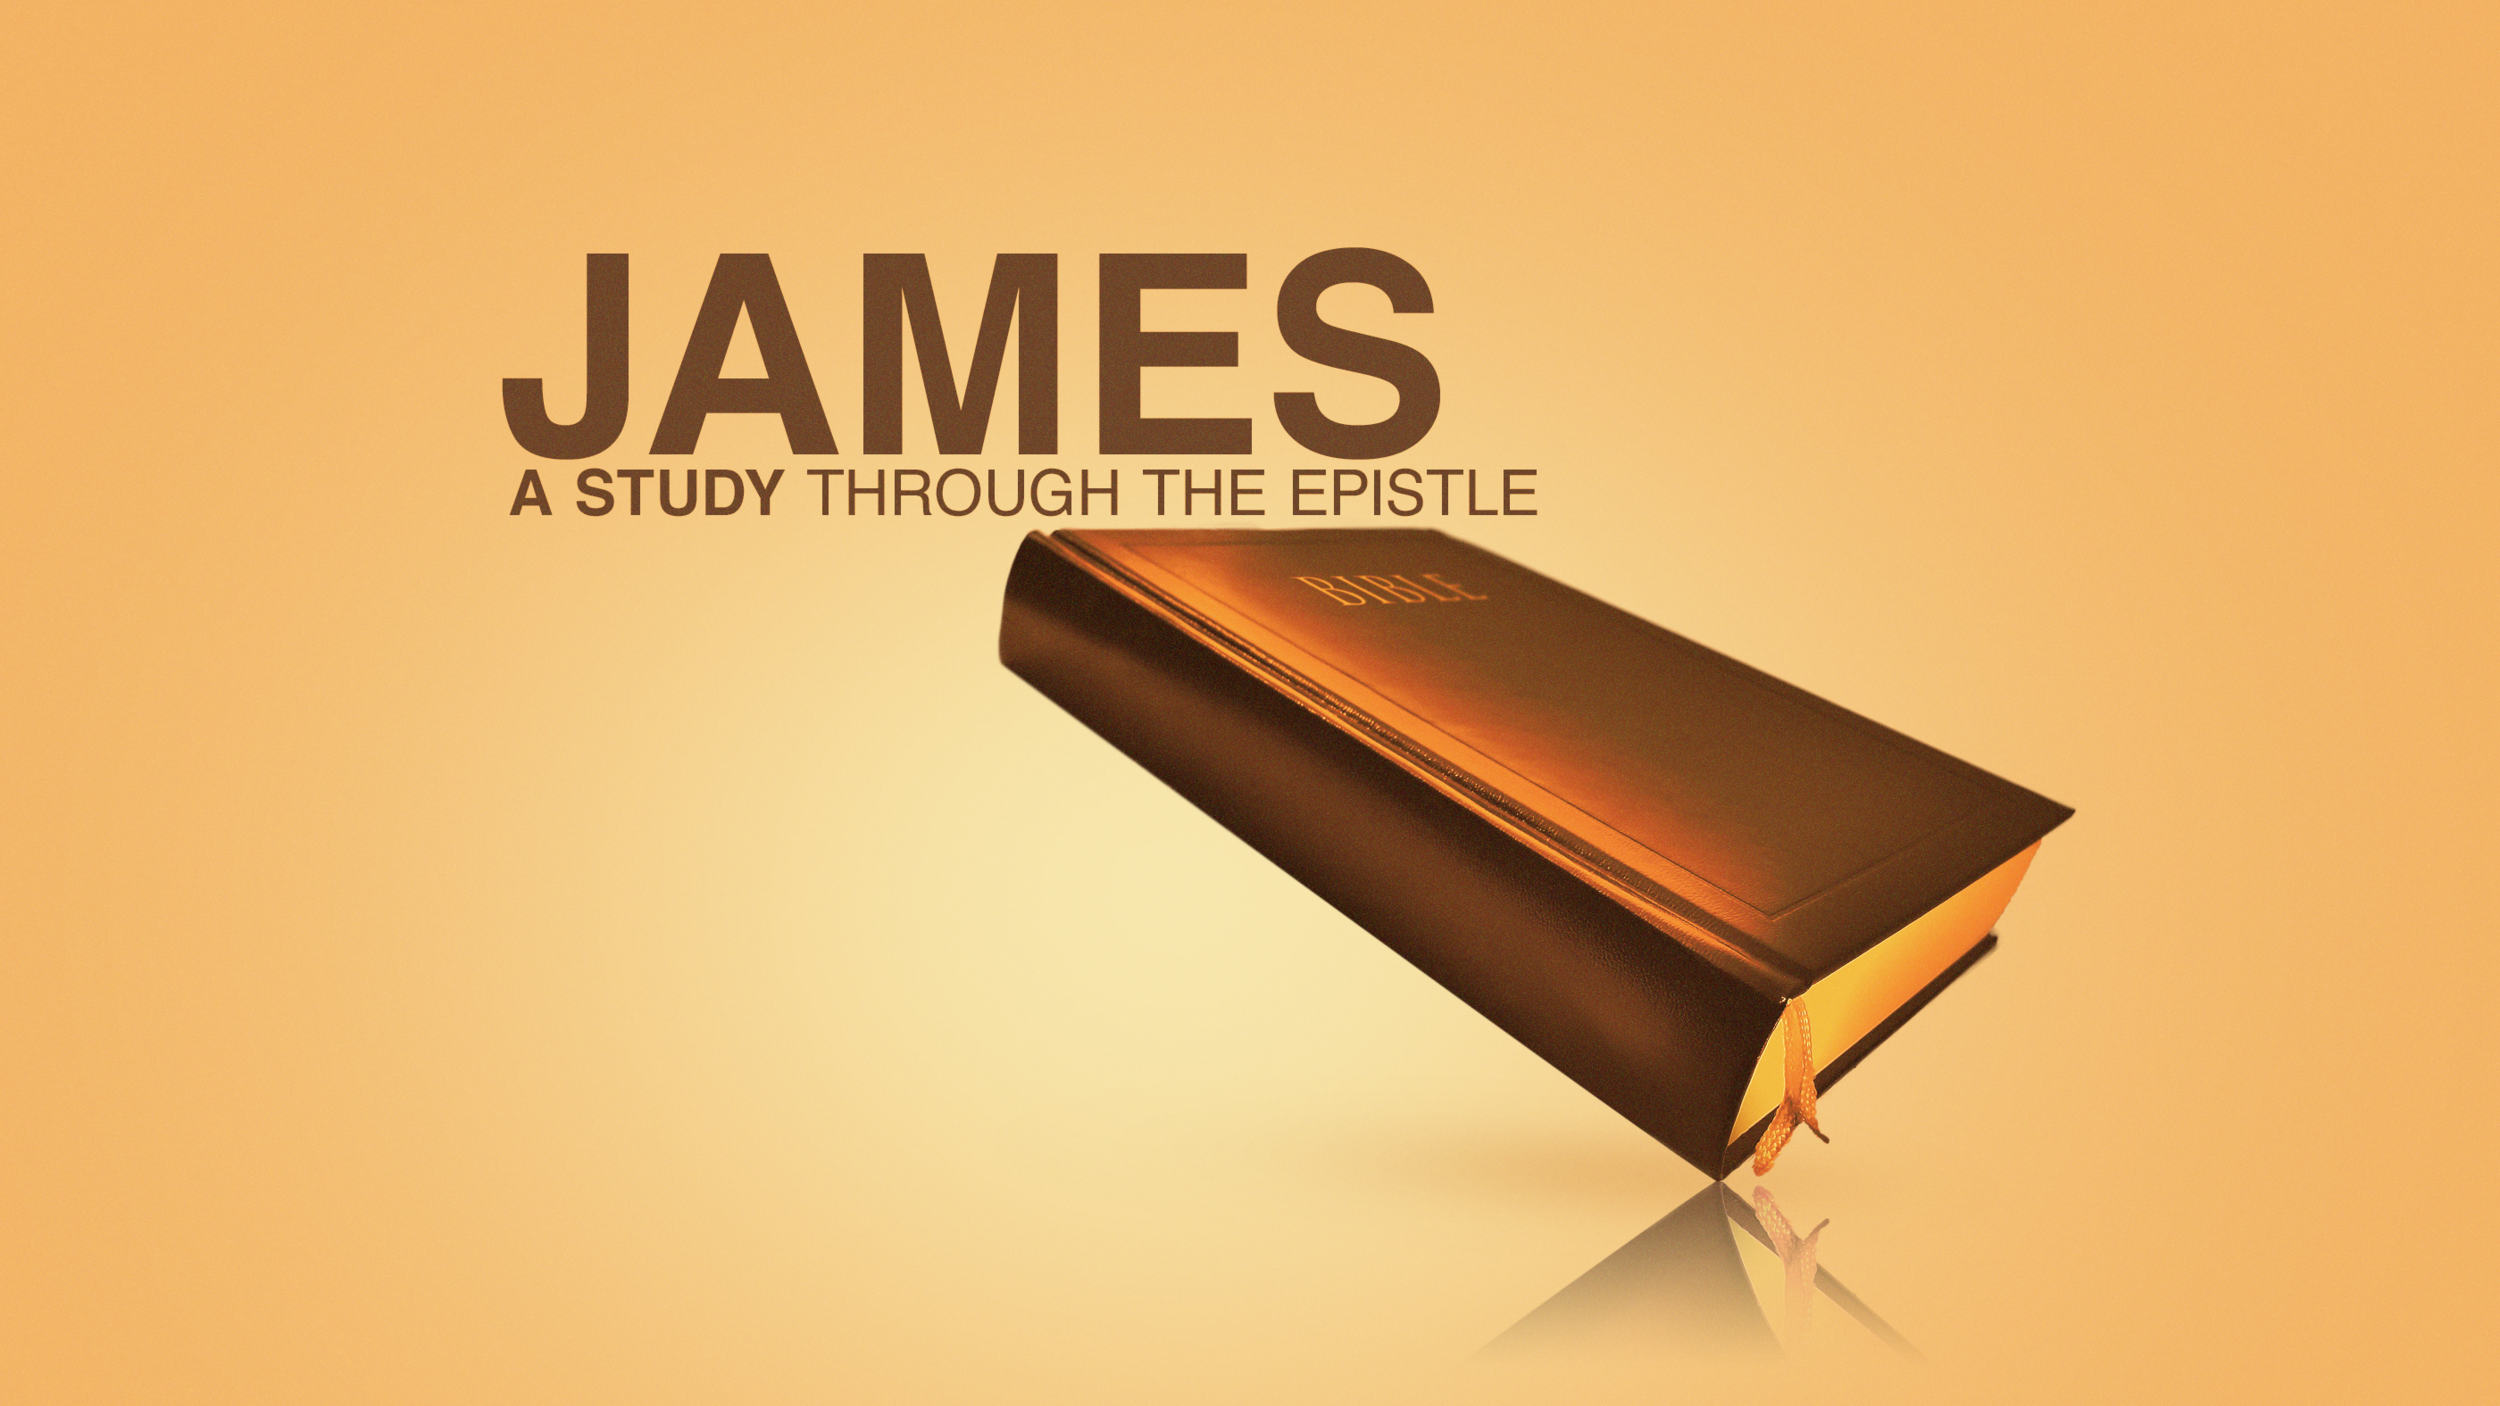 james title 1 (1).png